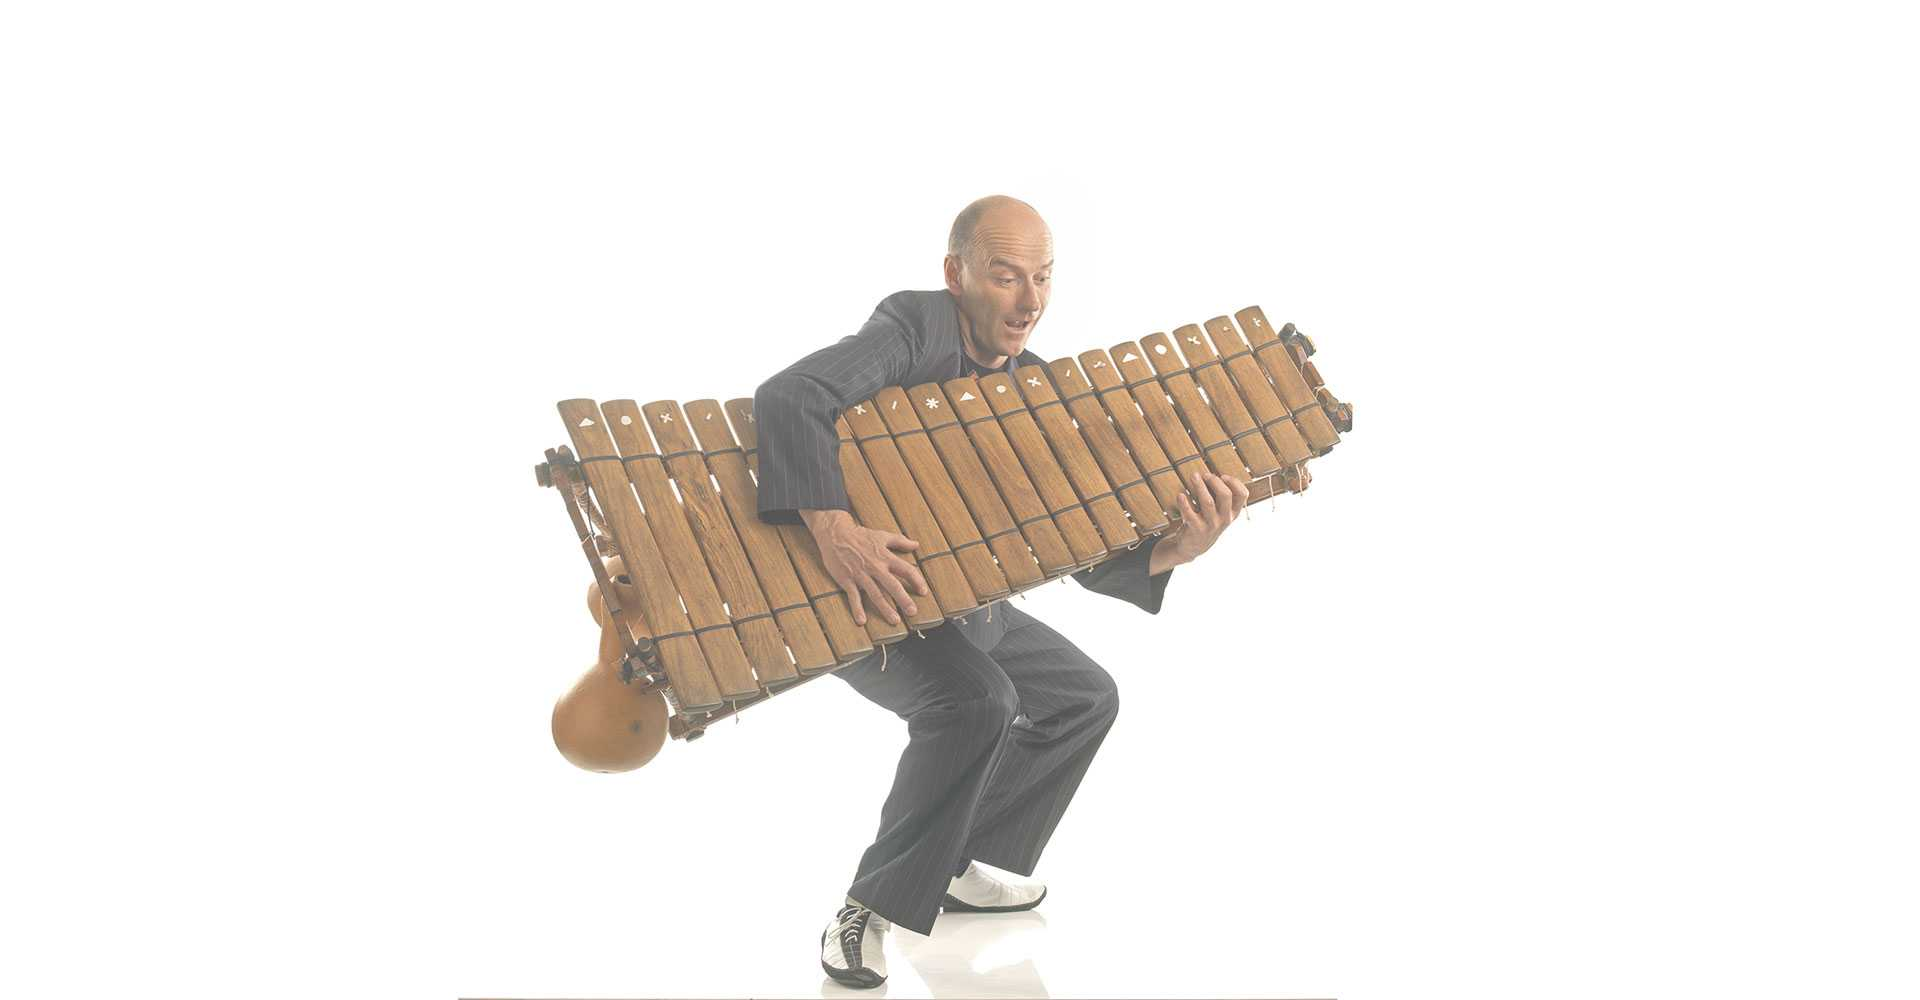 PLAYING BALAFON IS MY PASSION